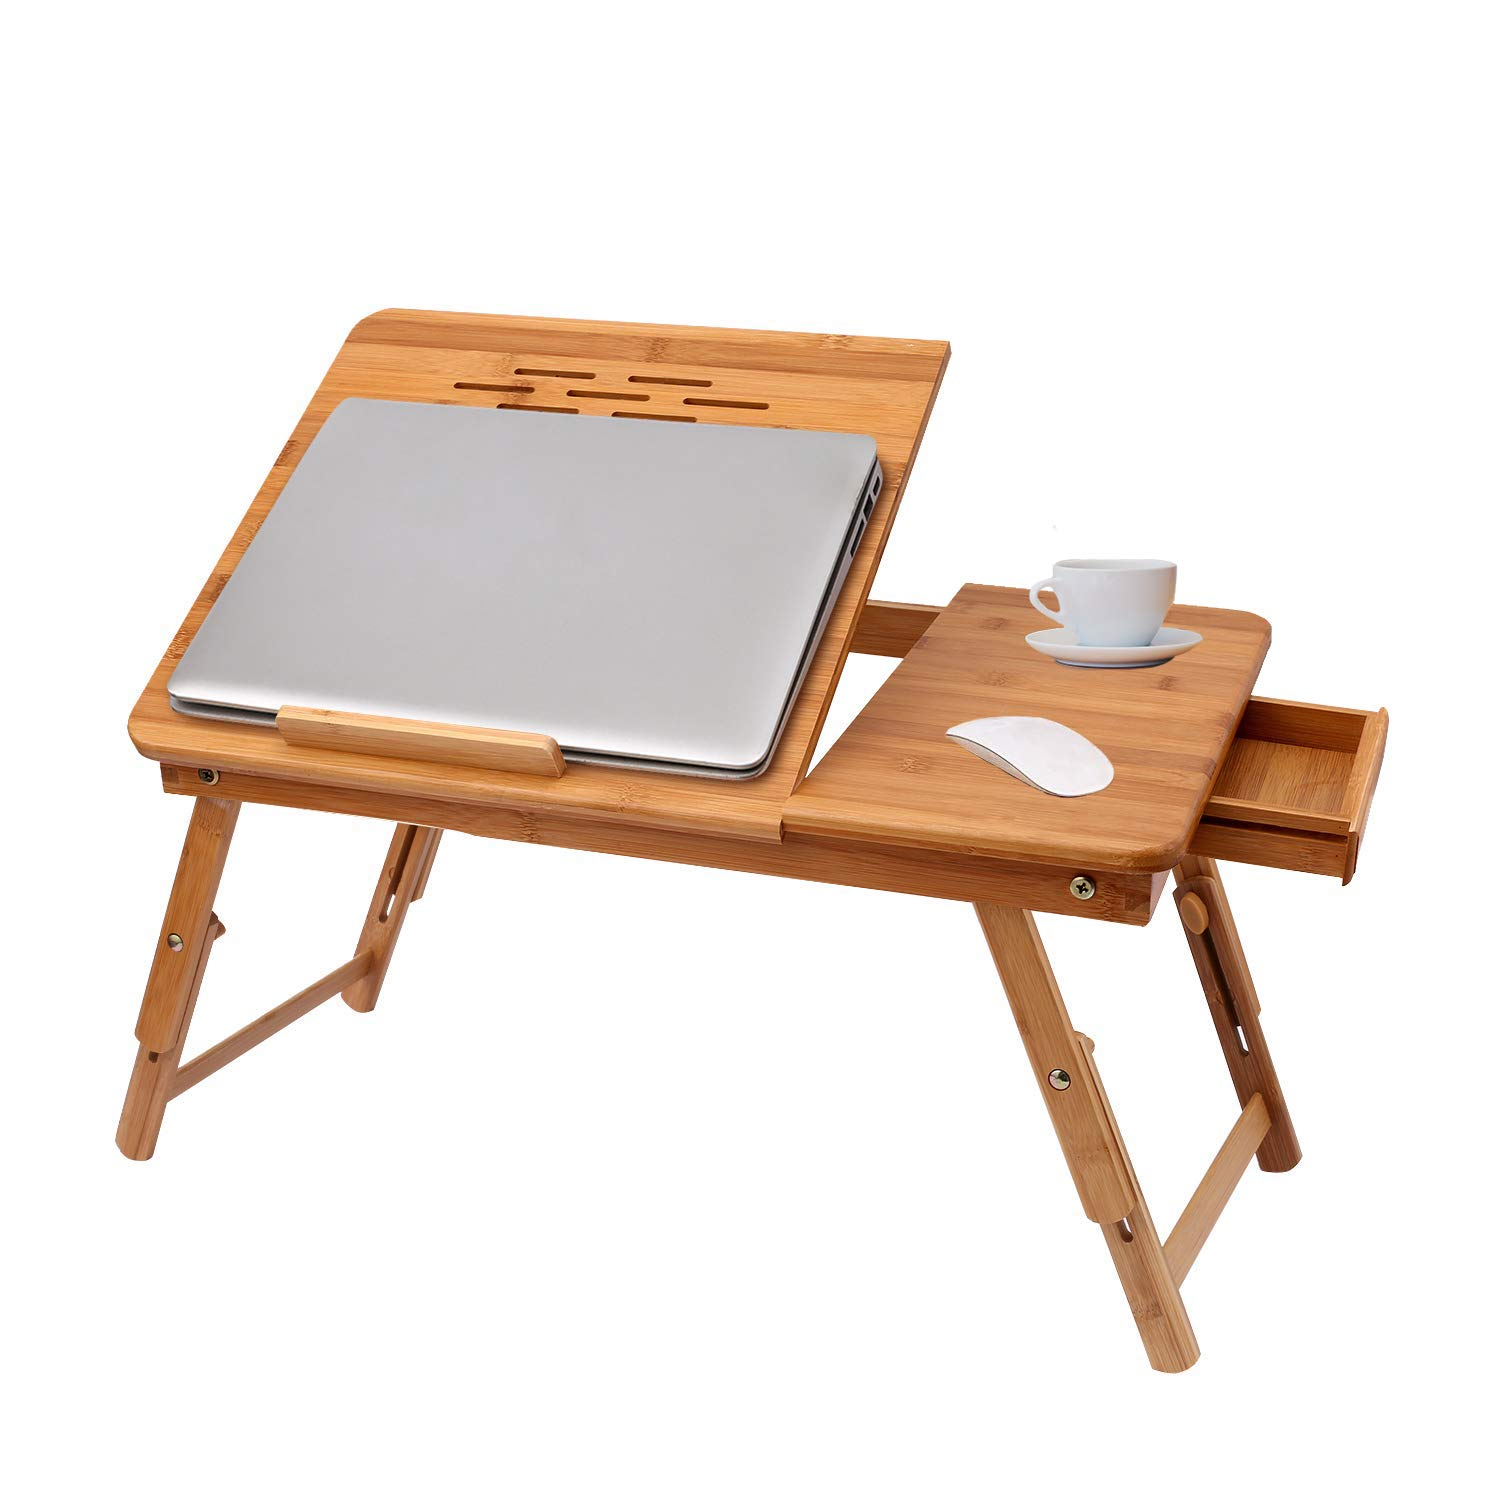 Jaketen Adjustable Bamboo Laptop Desk, Breakfast Serving Bed Tray with Tilting Top Drawer, Bed Desk for Surfing Reading Writing Eating